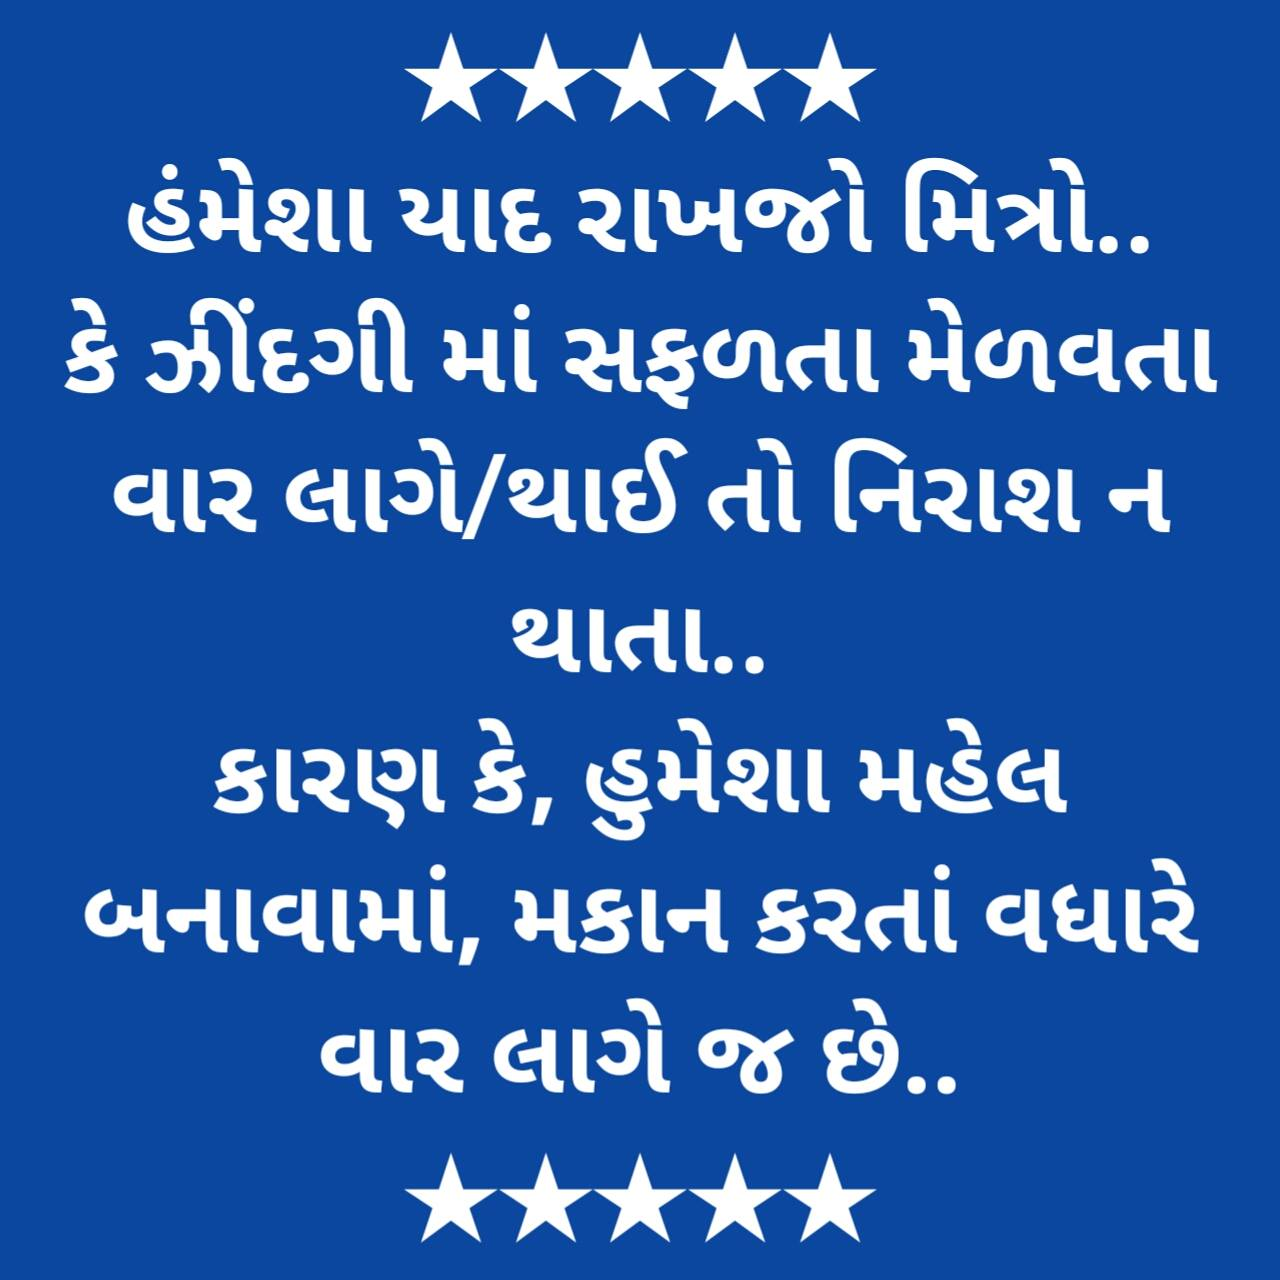 gujarati-motivational-suvichar-with-images-10.jpg